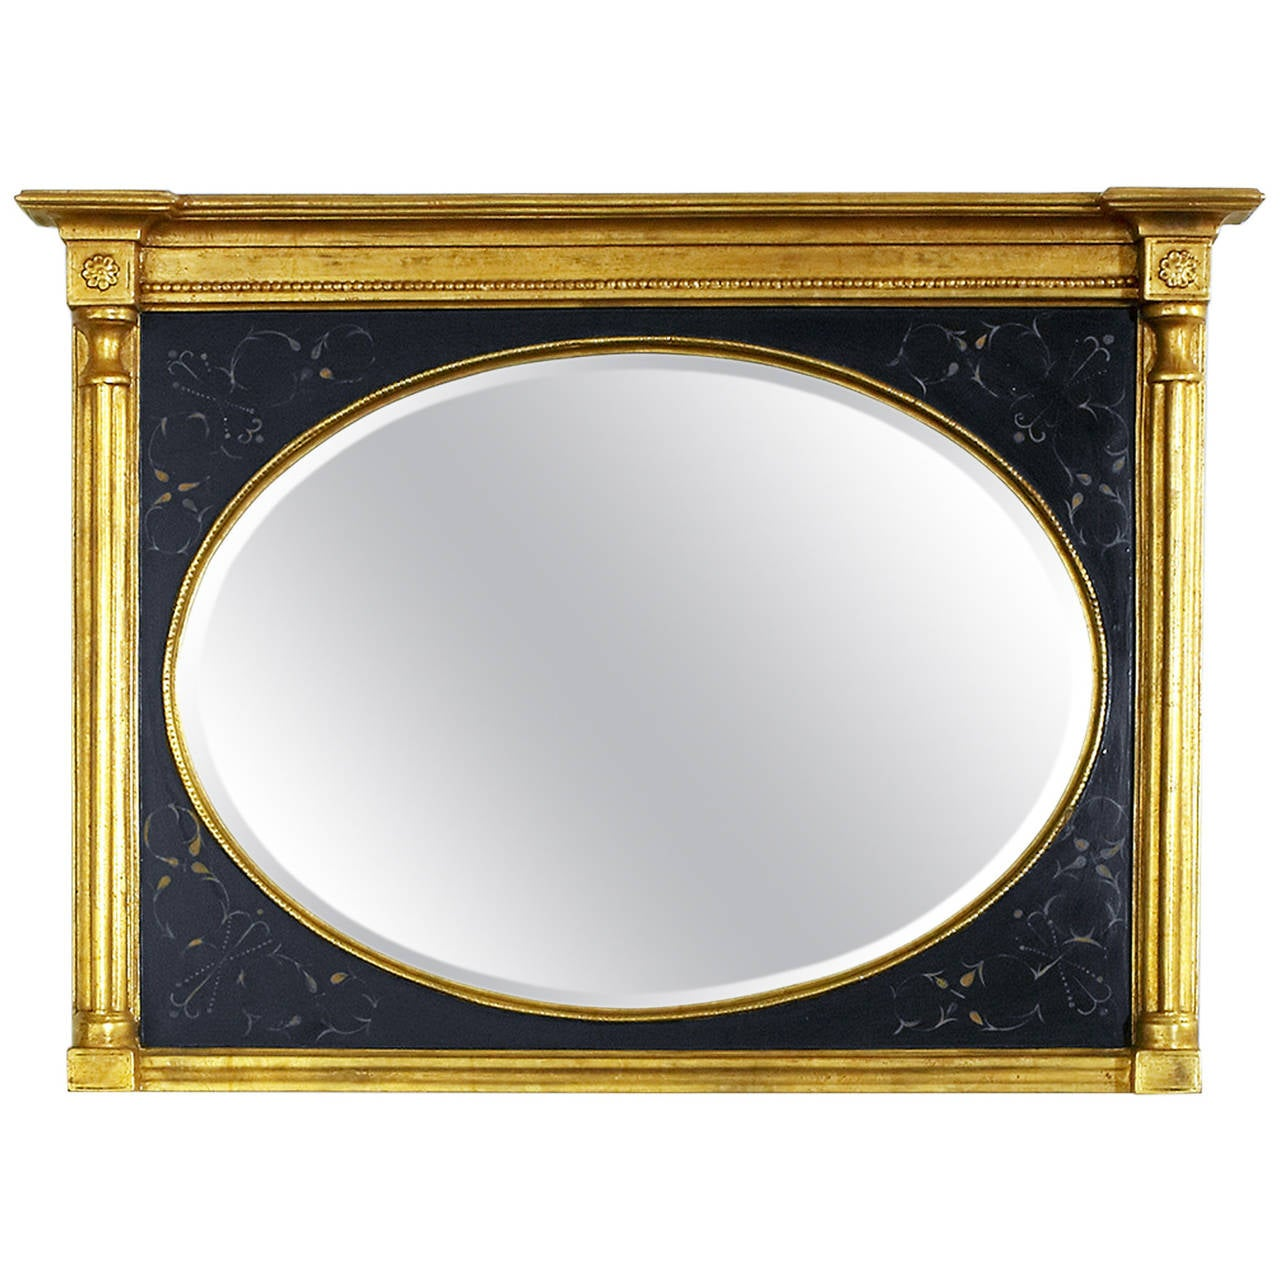 Black and Gold Mirror with Bevel Over Man's Chest 1